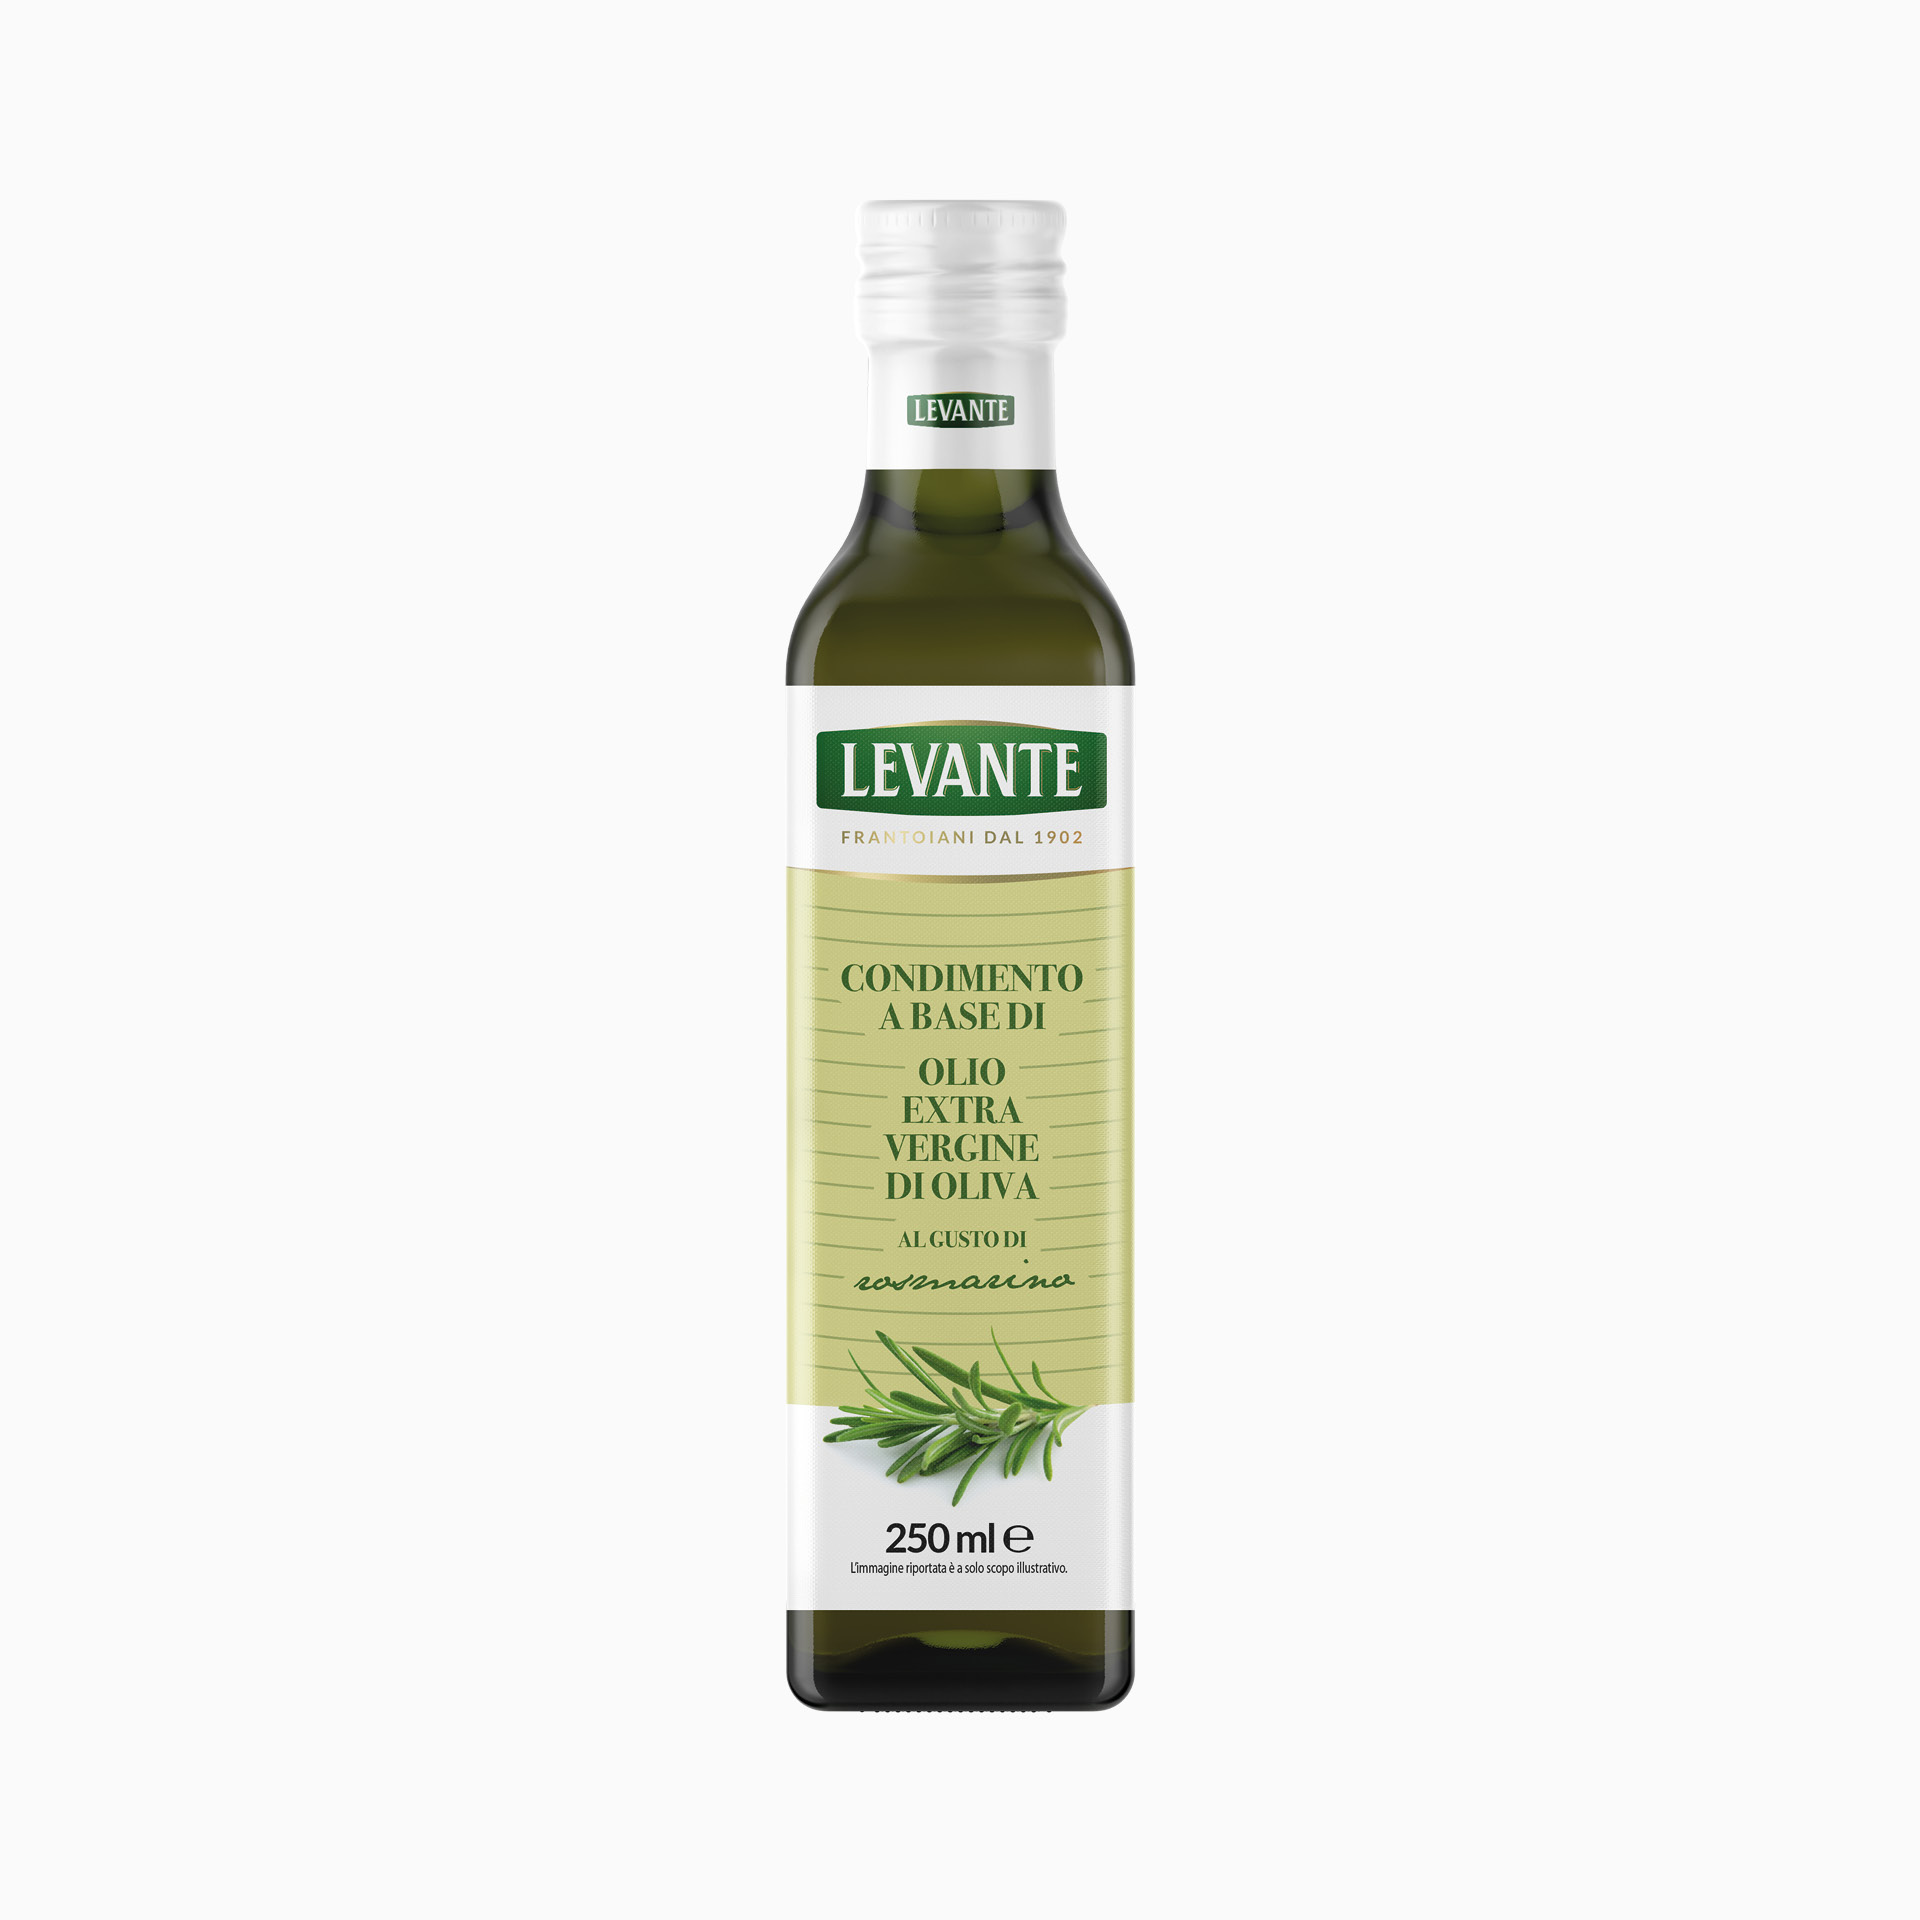 Dressing flavoured with Rosemary